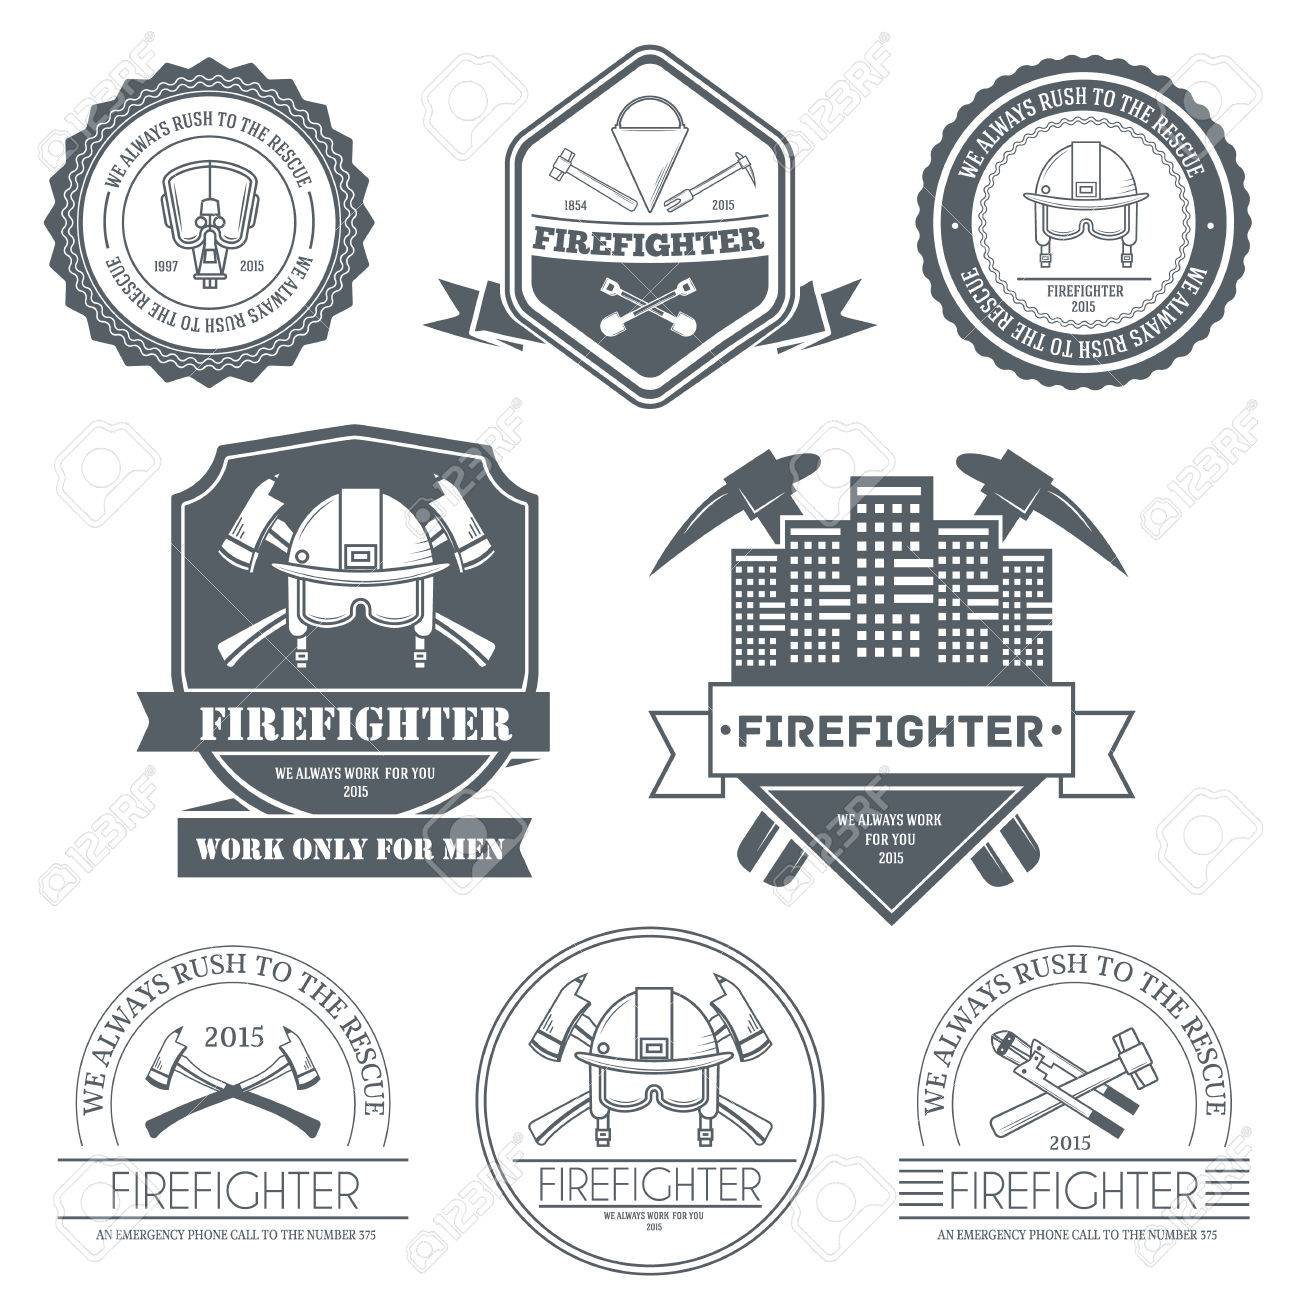 firefighter label template of emblem element for your product or design, web and mobile applications with text. Vector illustration with thin lines isolated icons on stamp symbol - 39172835